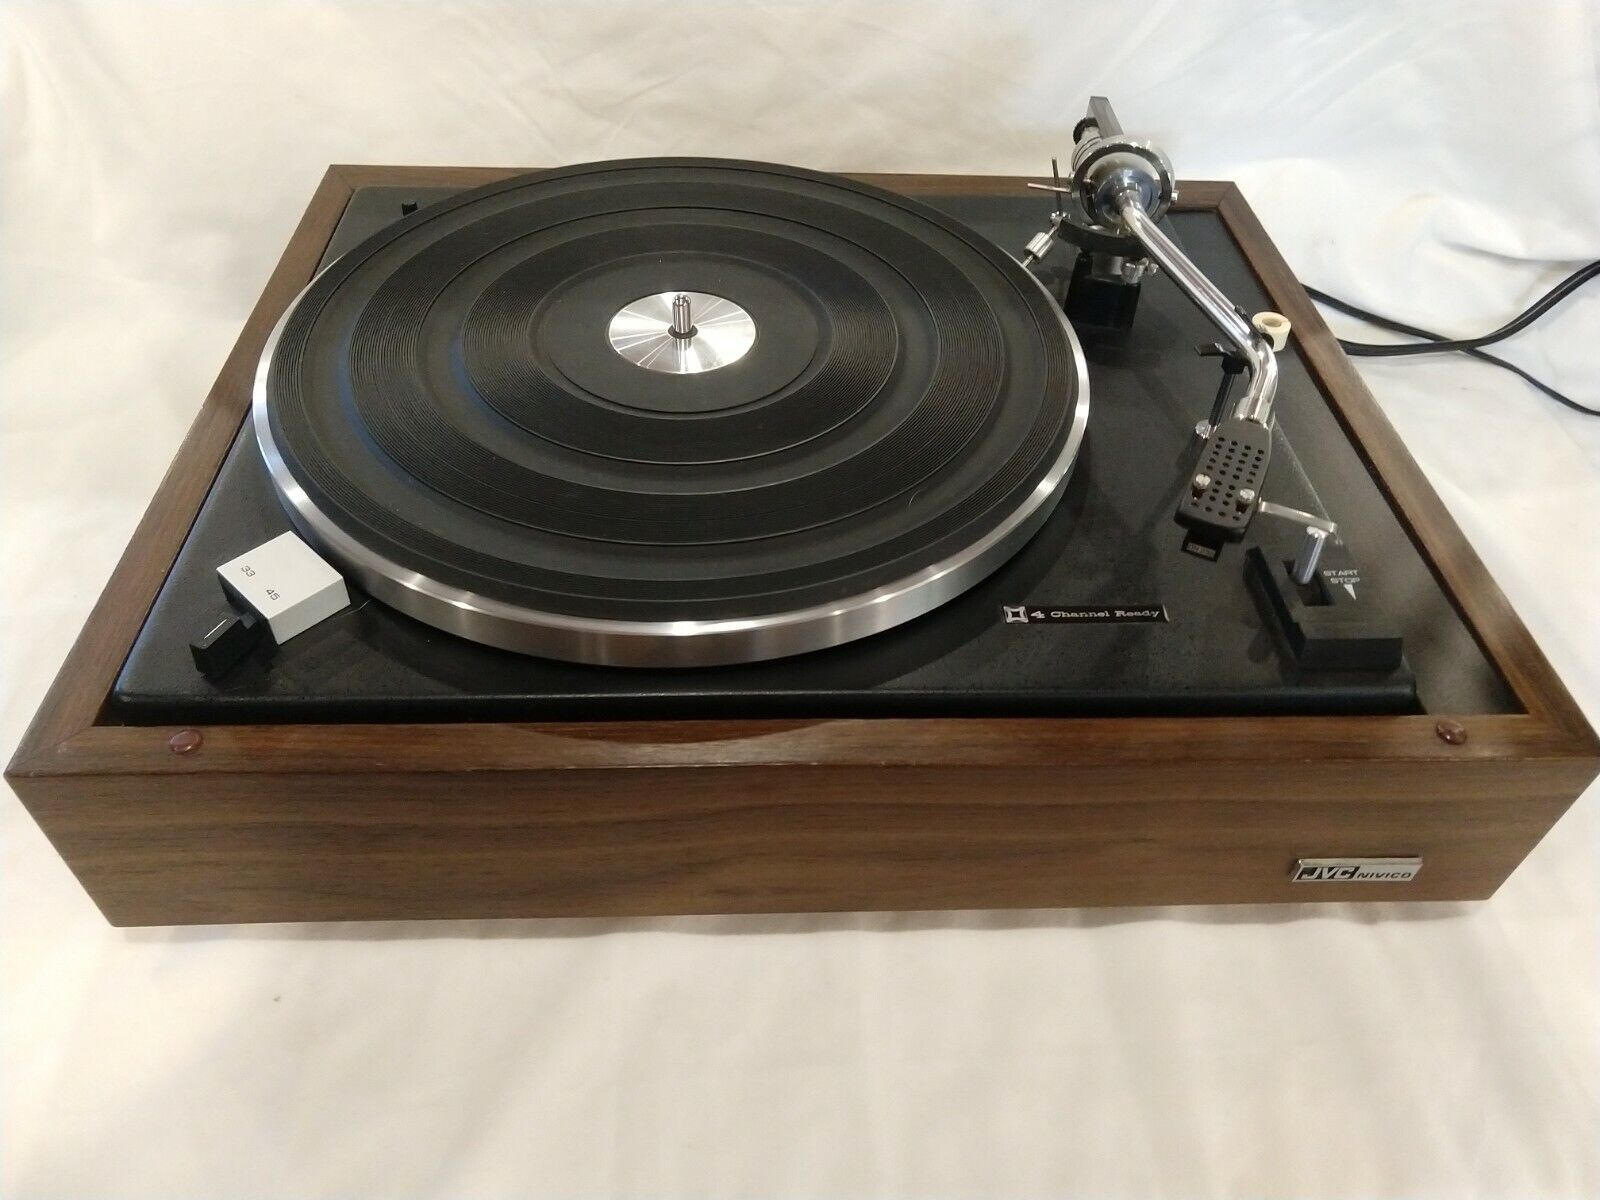 JVC SRP-473E Turntable in excellent condition, freshly serviced, with dust cover. Buy it now for 300.00